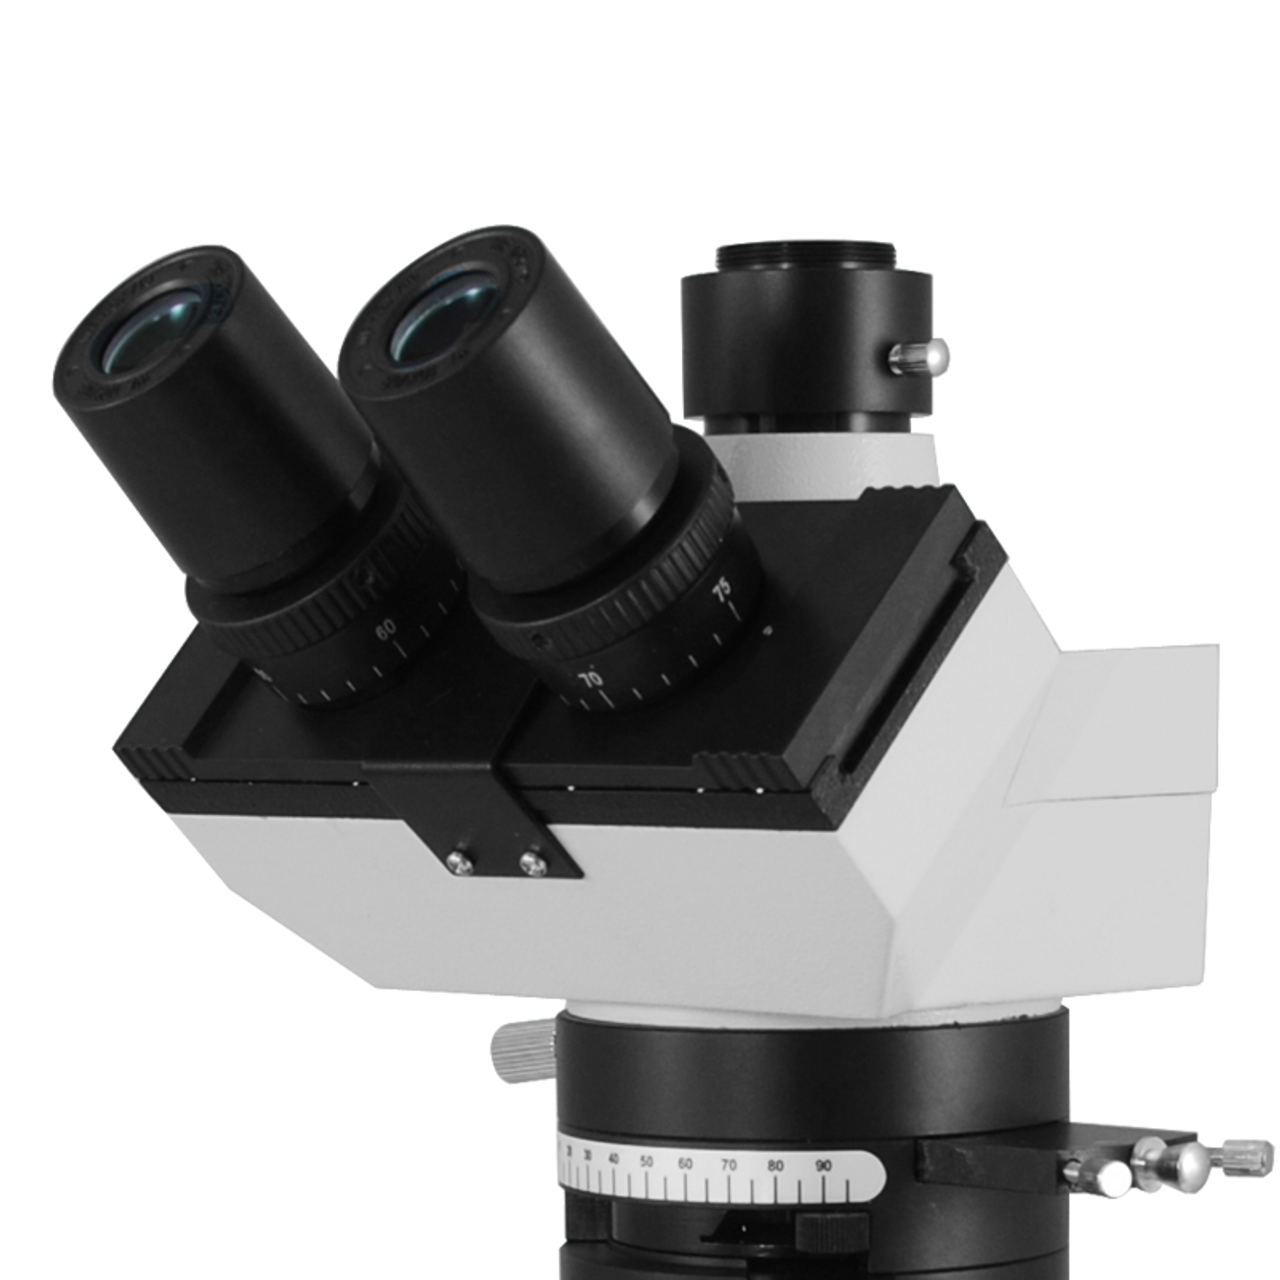 WF10X Magnification High Eyepoint Microscope Wide-Angle Eyepiece 18mm,Built-in Reticle Wire for Biological Microscope Microscope Eyepiece